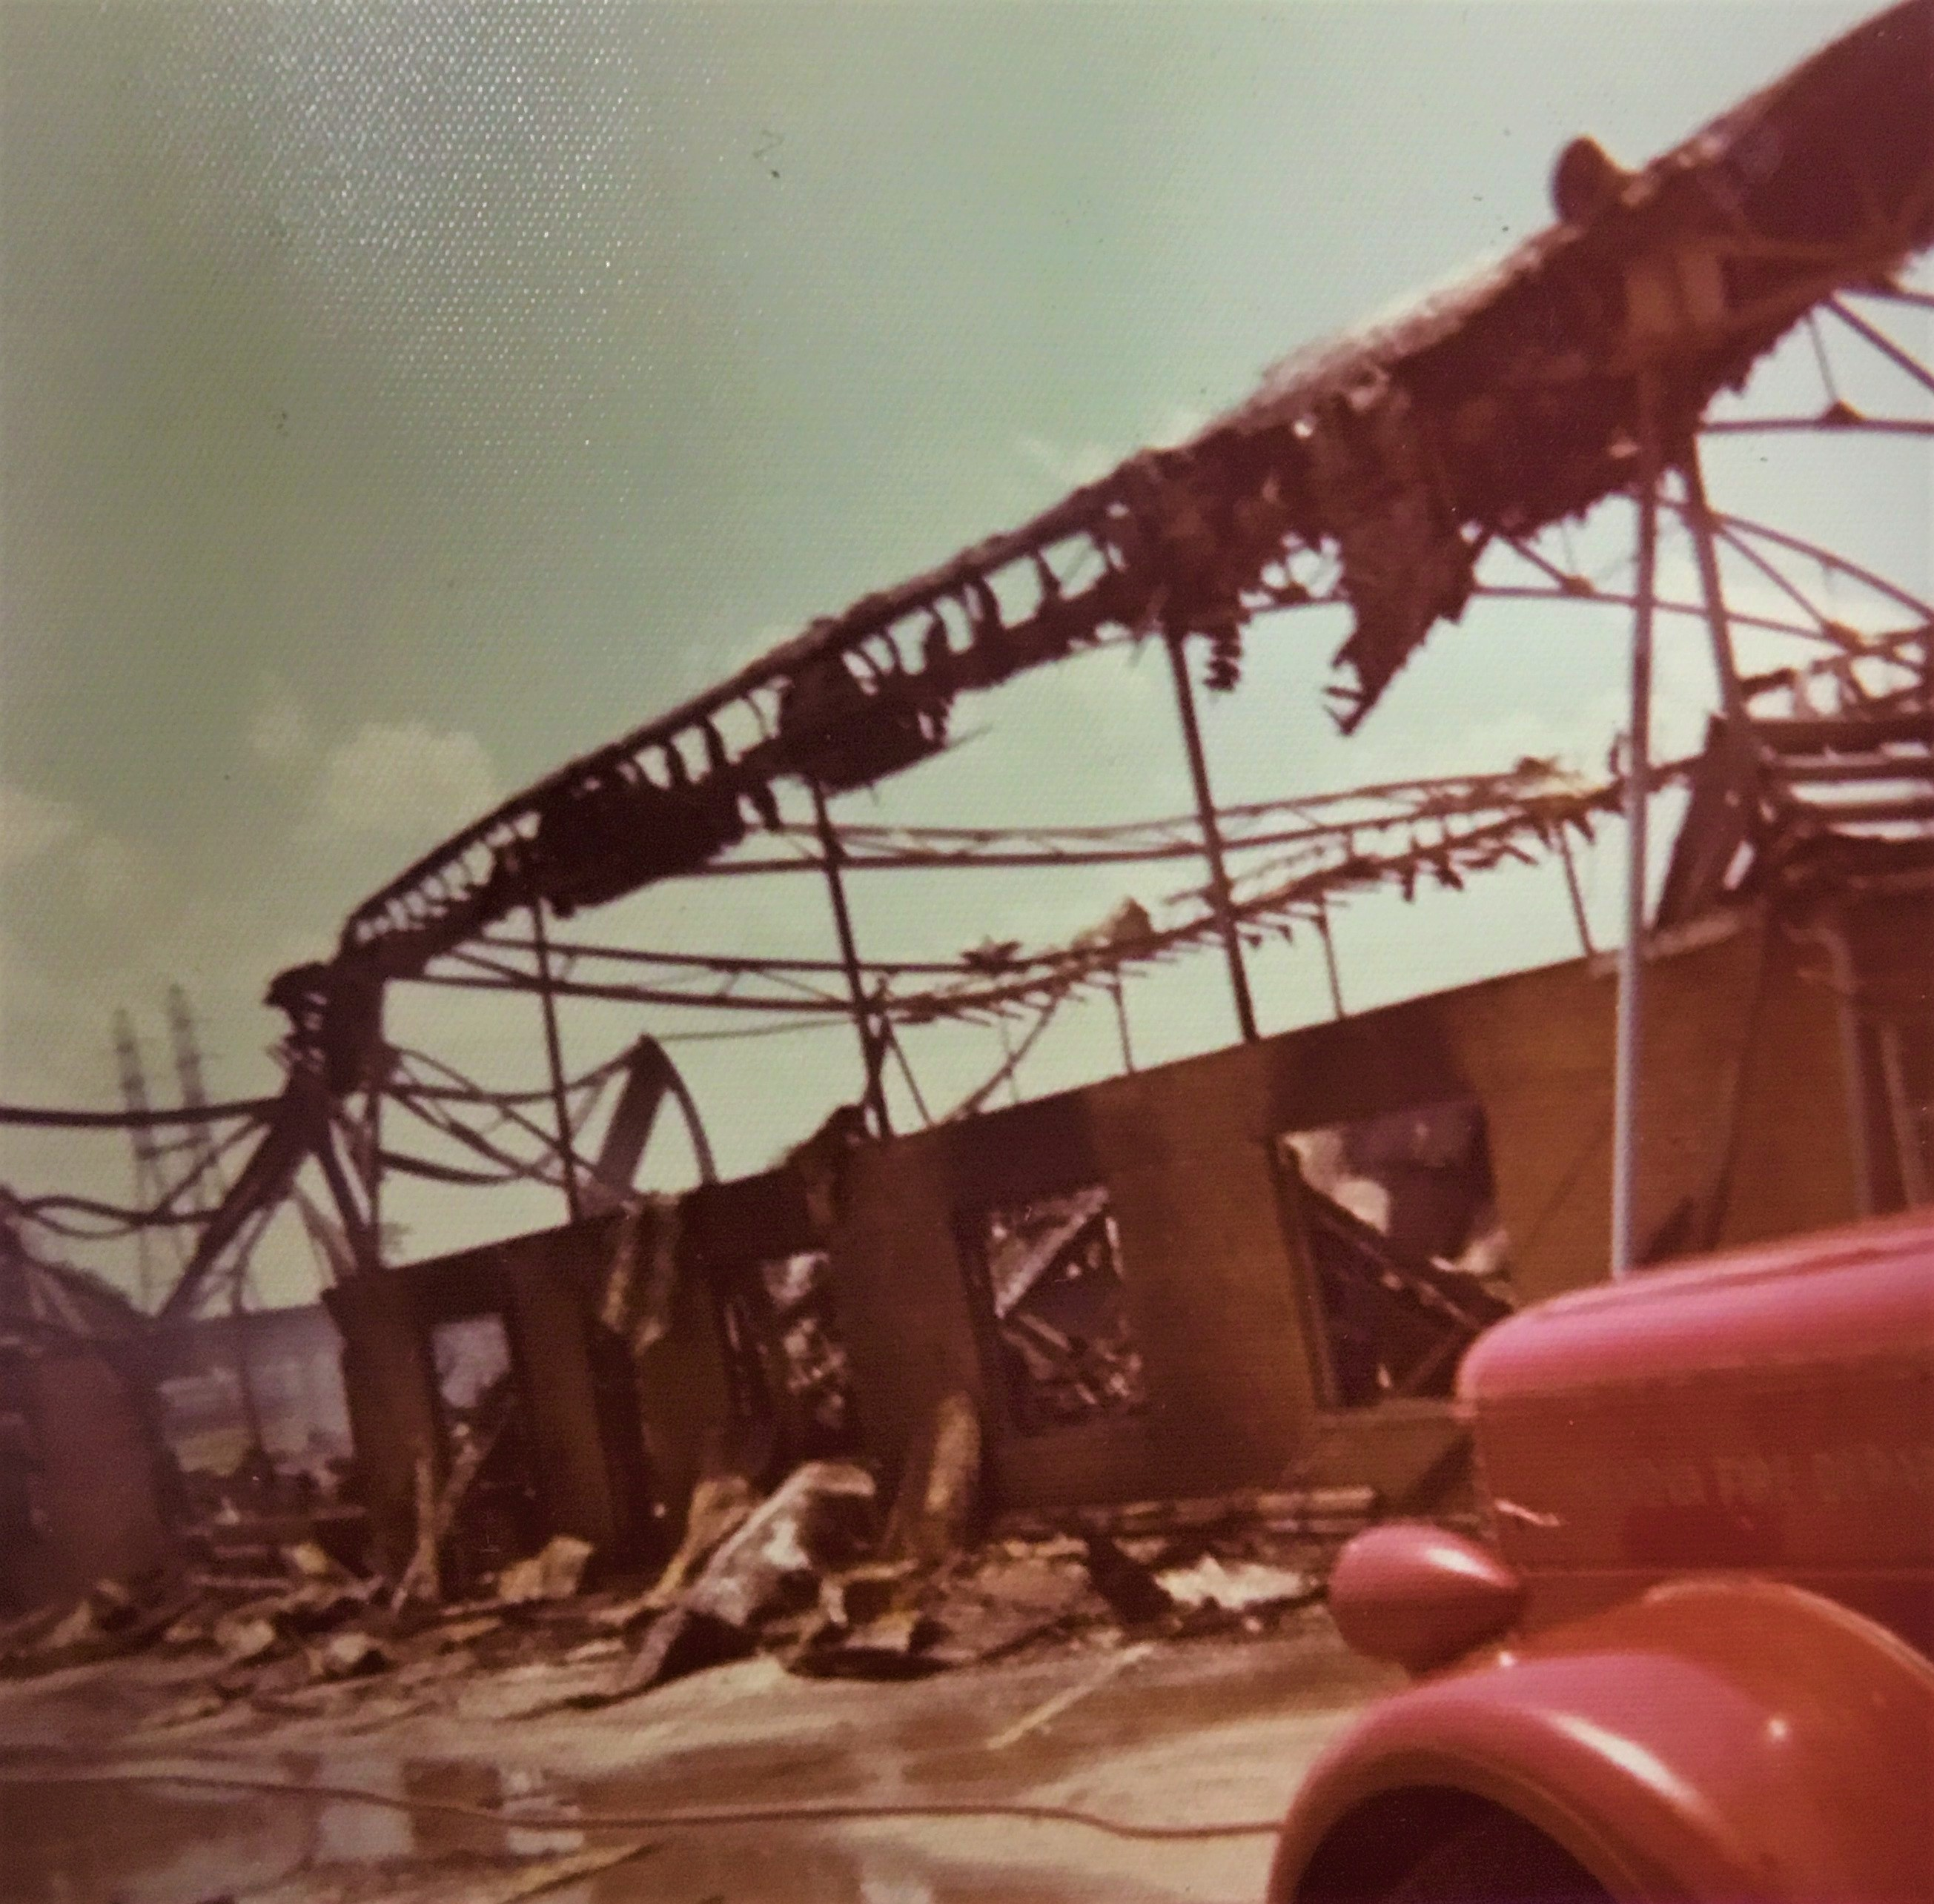 The pavilion in the aftermath of the 1973 fire. Courtesy of the Ceredo Historical Society Museum.